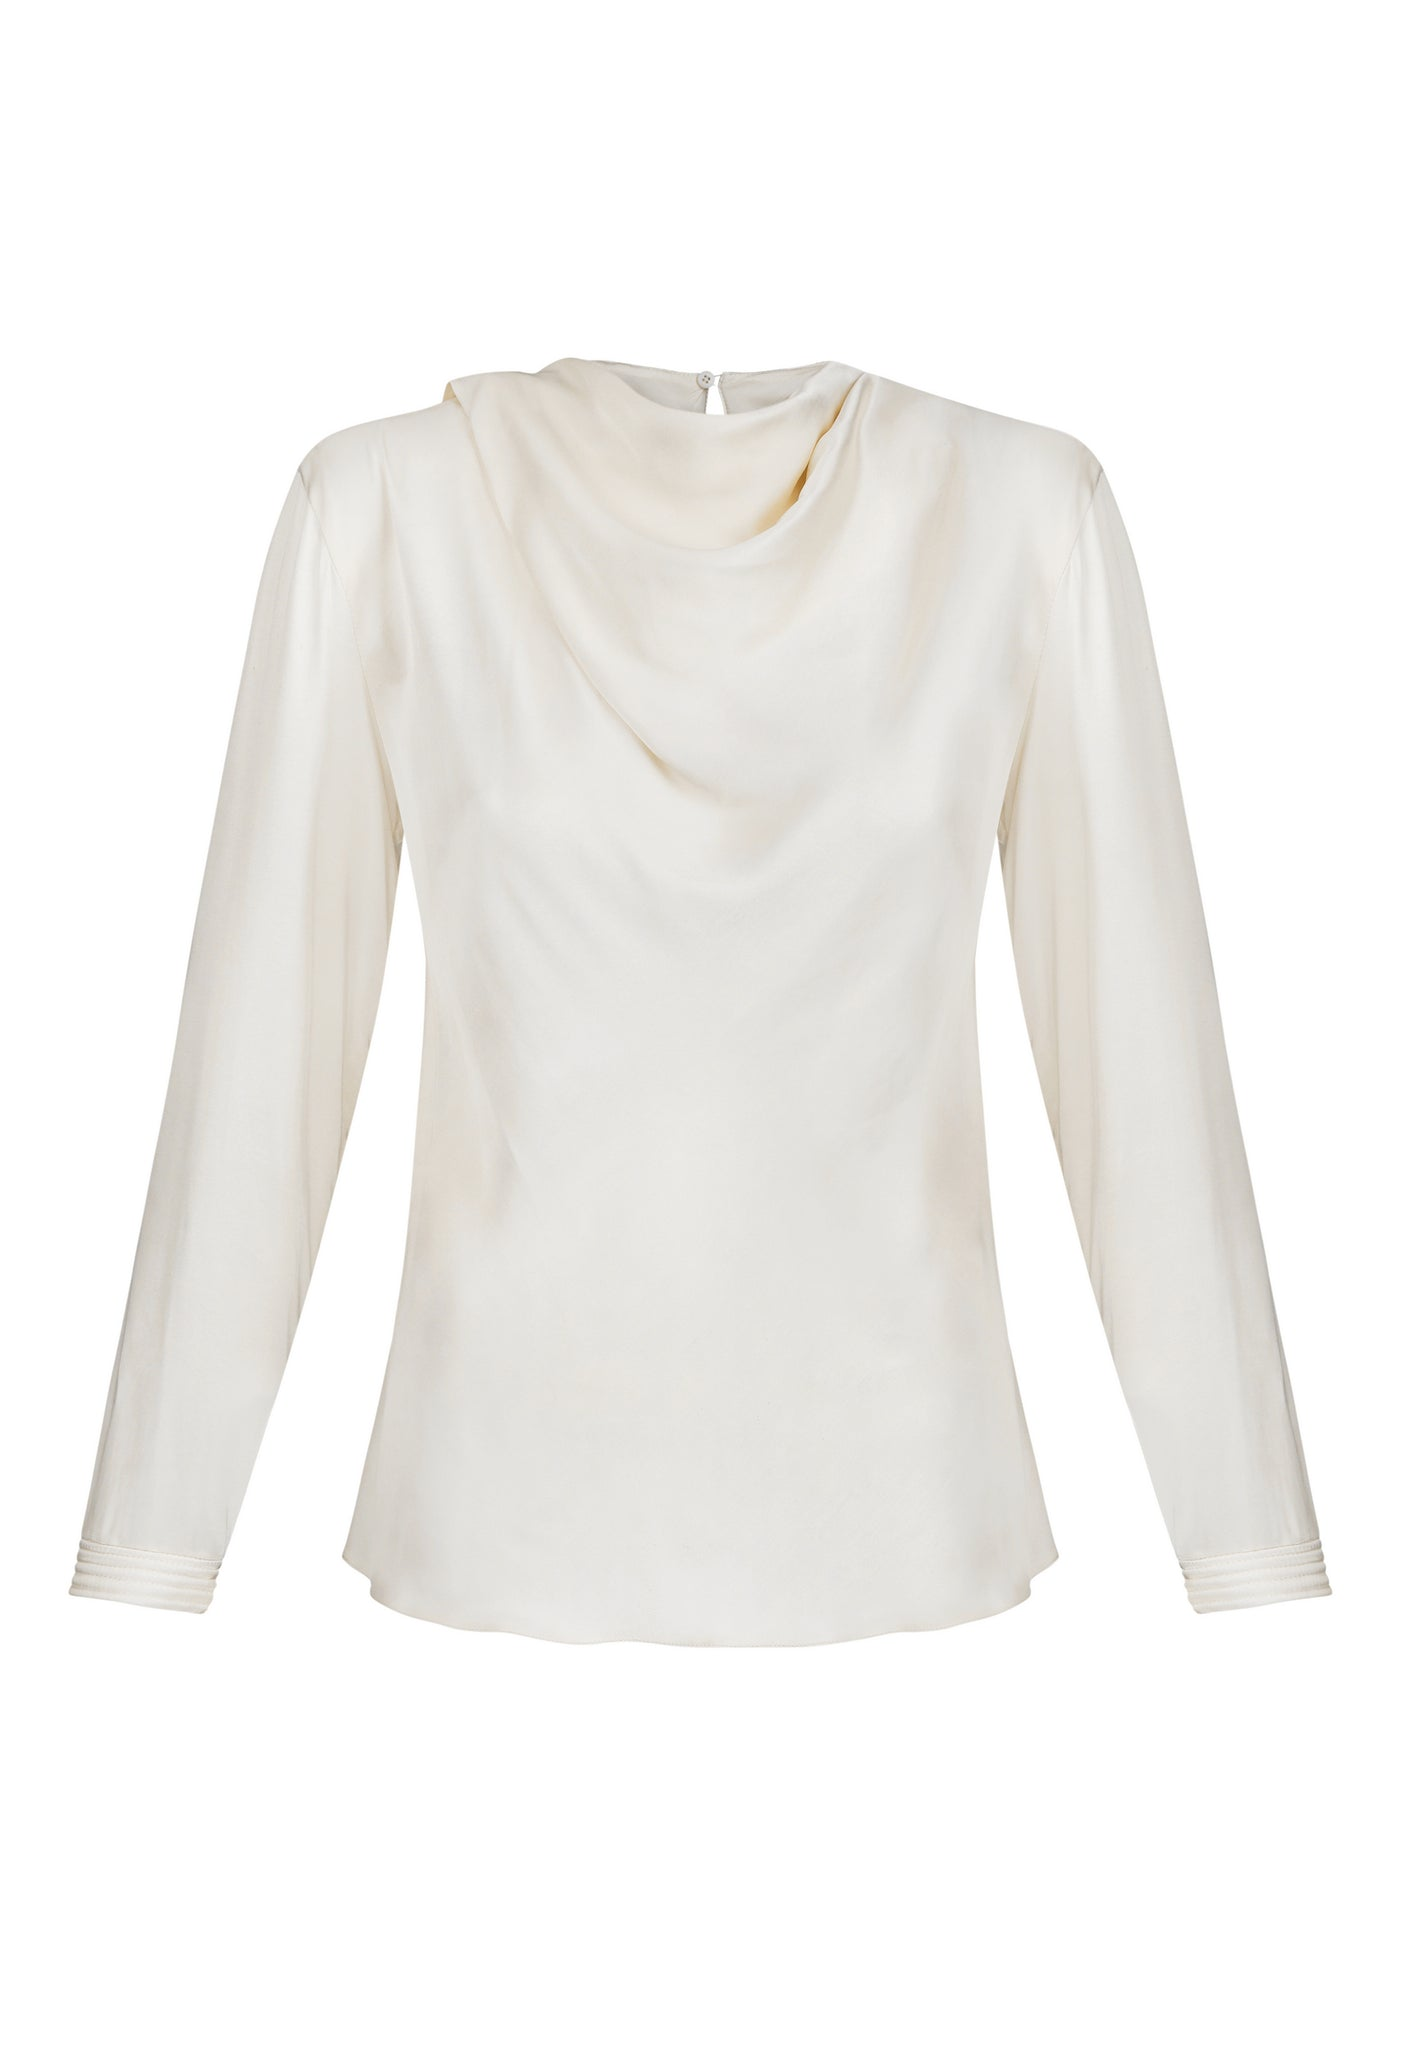 'Vanilla' blouse, front view.